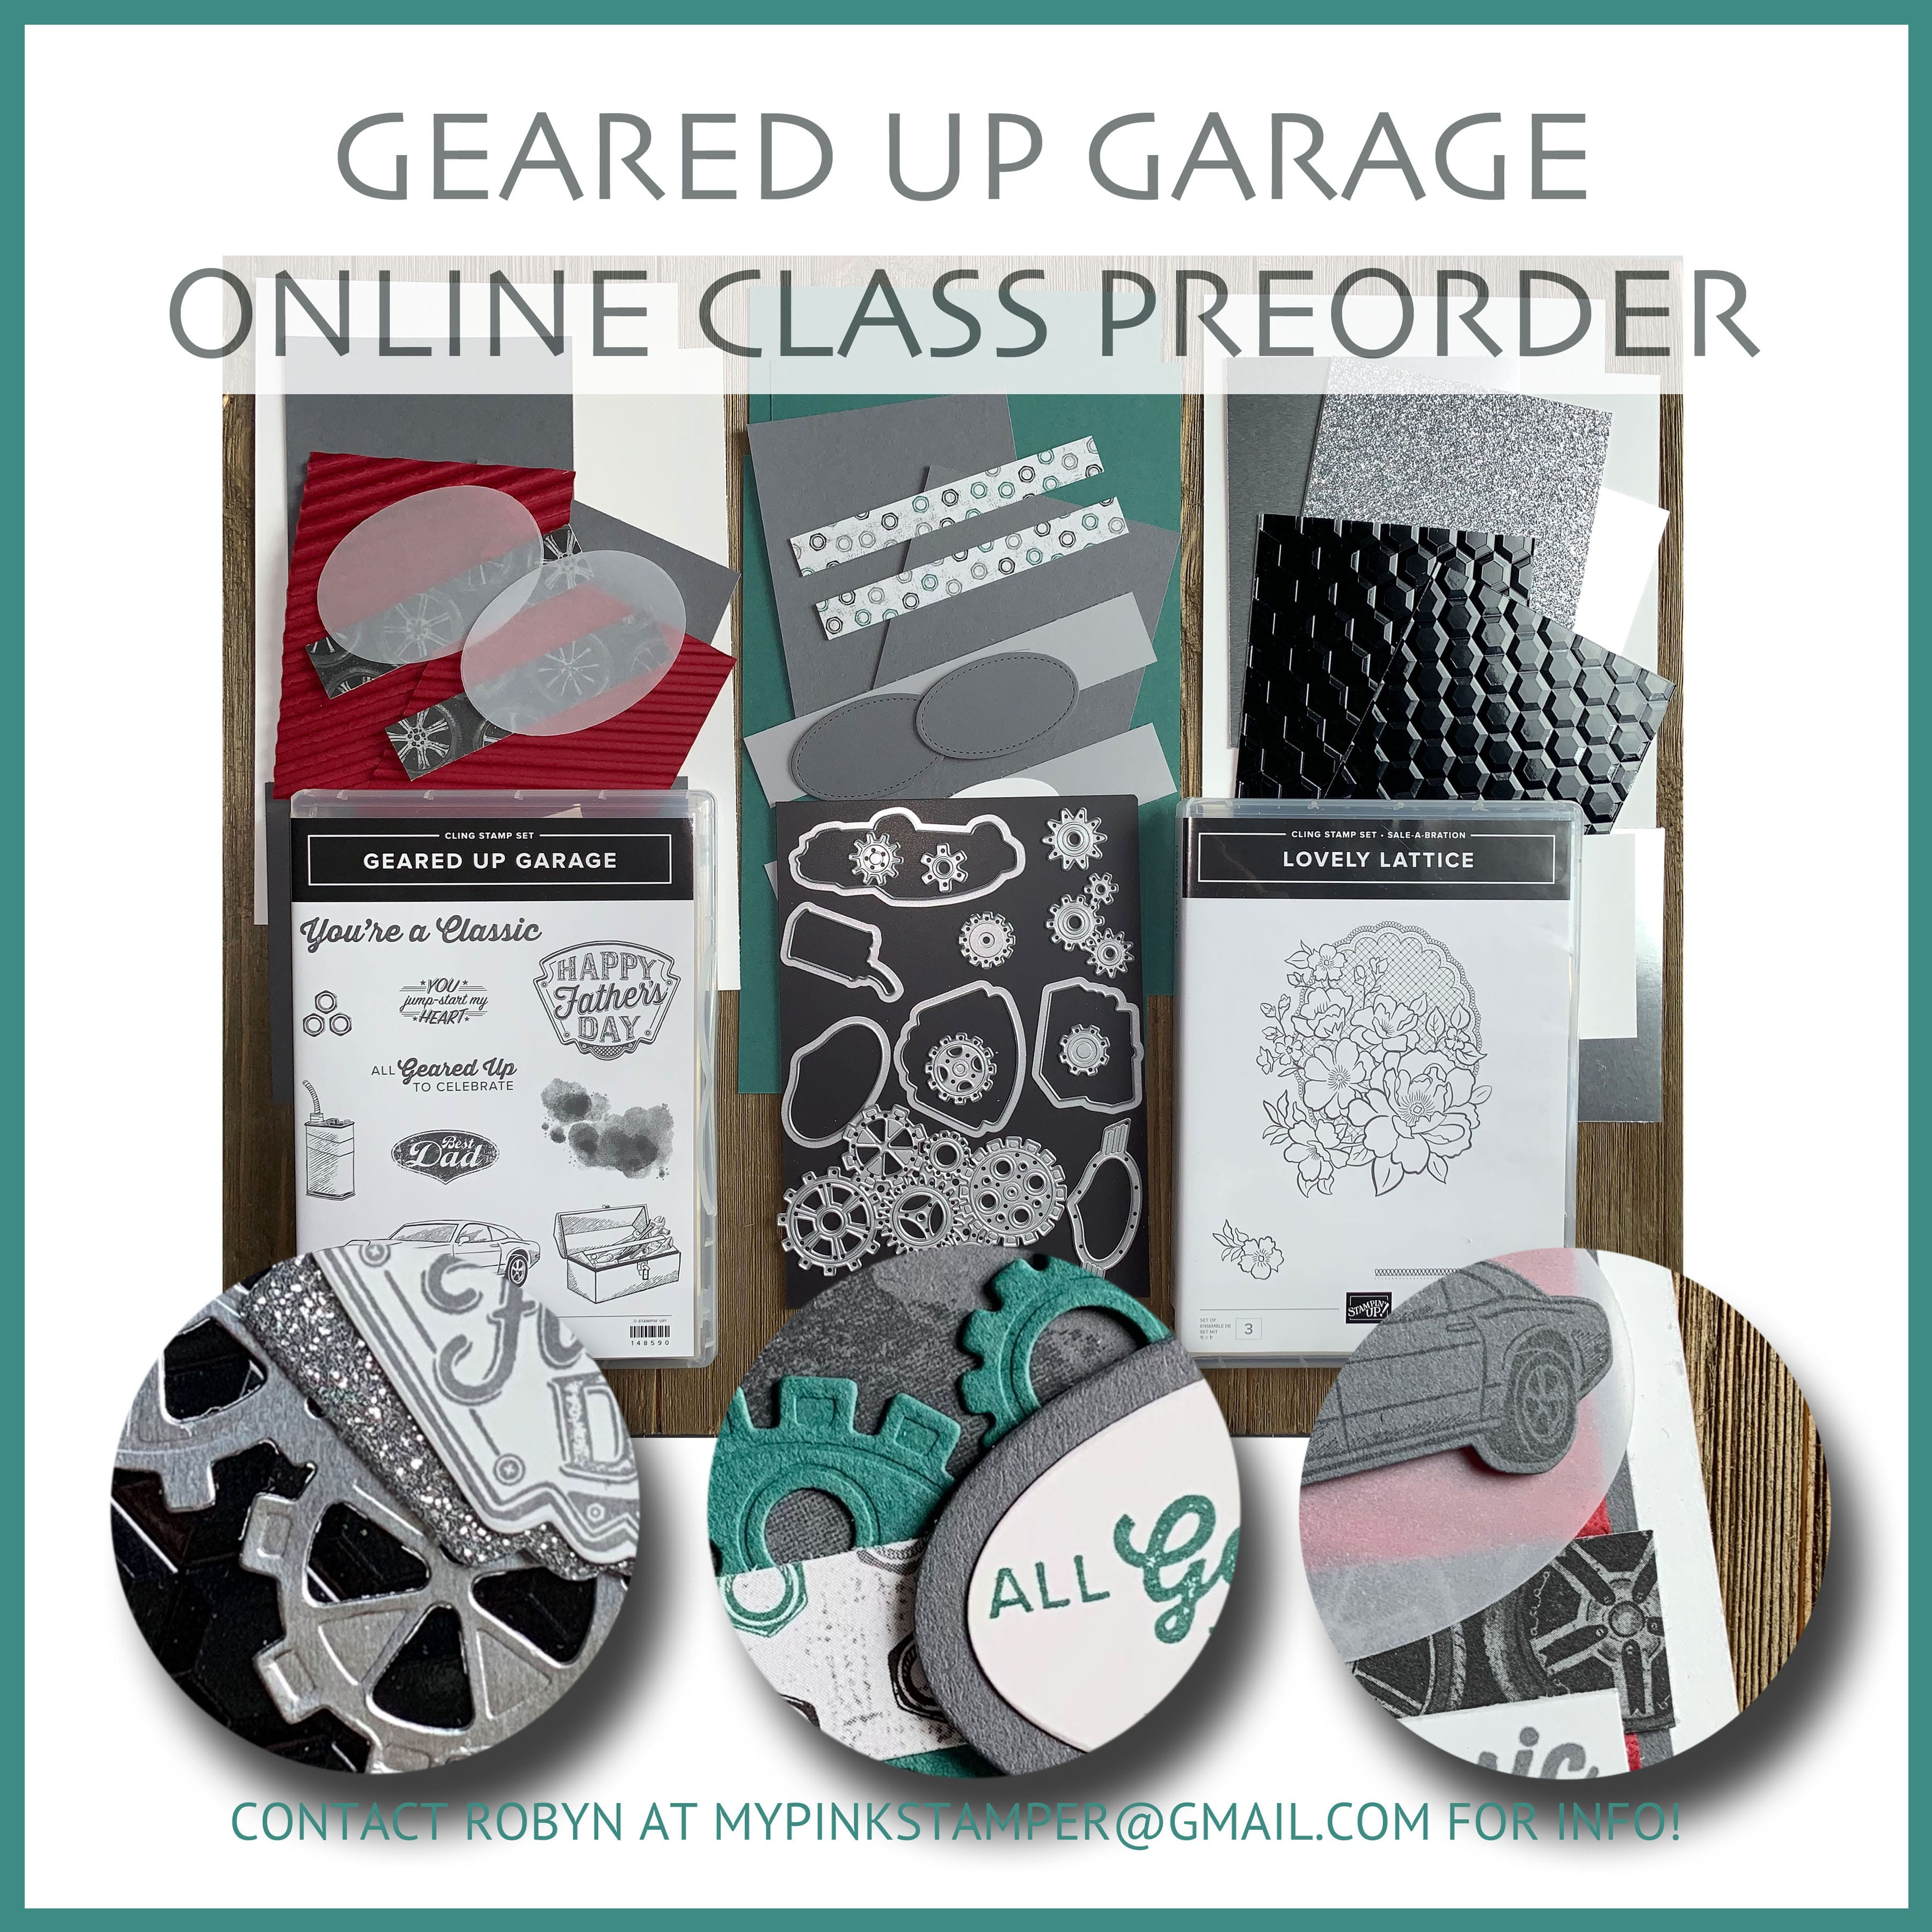 Stampin' Up! Geared Up Garage Online Class Preorder